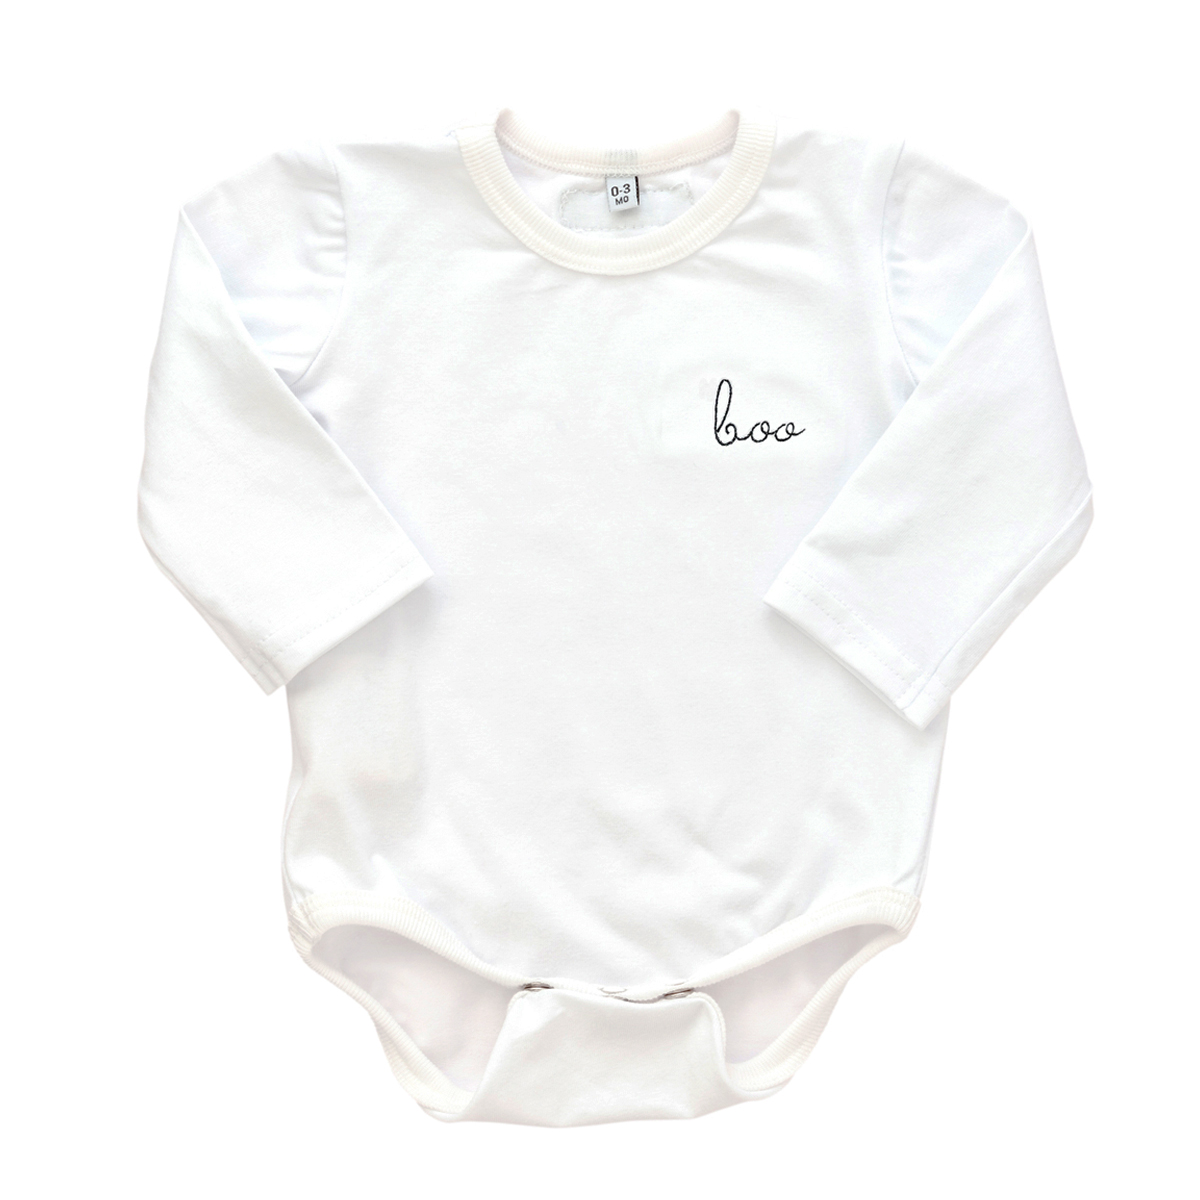 """Early Riser Long Sleeve Onesie in White with Black """"Boo"""" embroidery"""